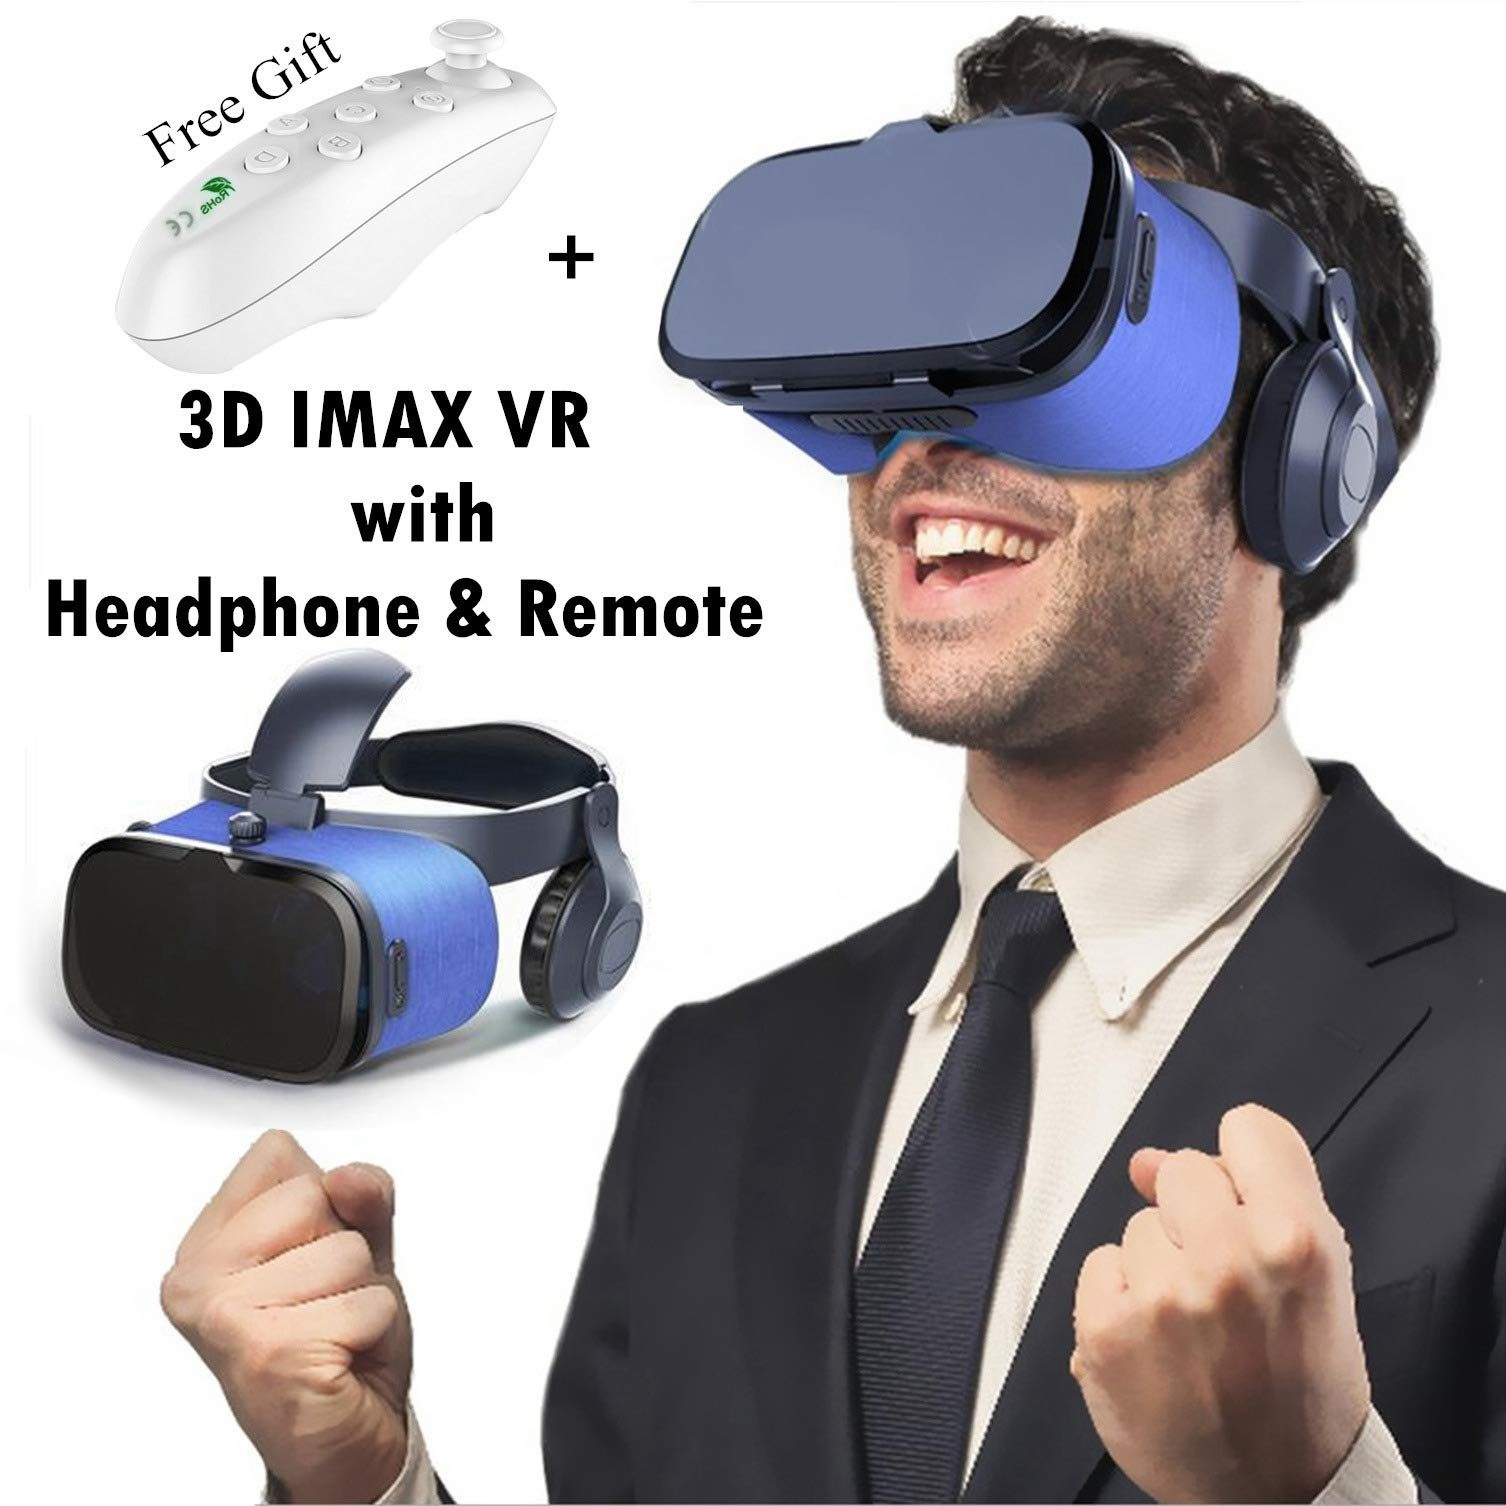 3D Virtual Reality Headset for Kid & Adult, Tsanglight 2018 New VR Goggle w/Headphone & Remote for 3D Movie/Game, VR Glasses Fit for iOS iPhone XR X 8 7 6 S Plus Android Samsung Galaxy S9 S8 S7 Edge by TSANGLIGHT